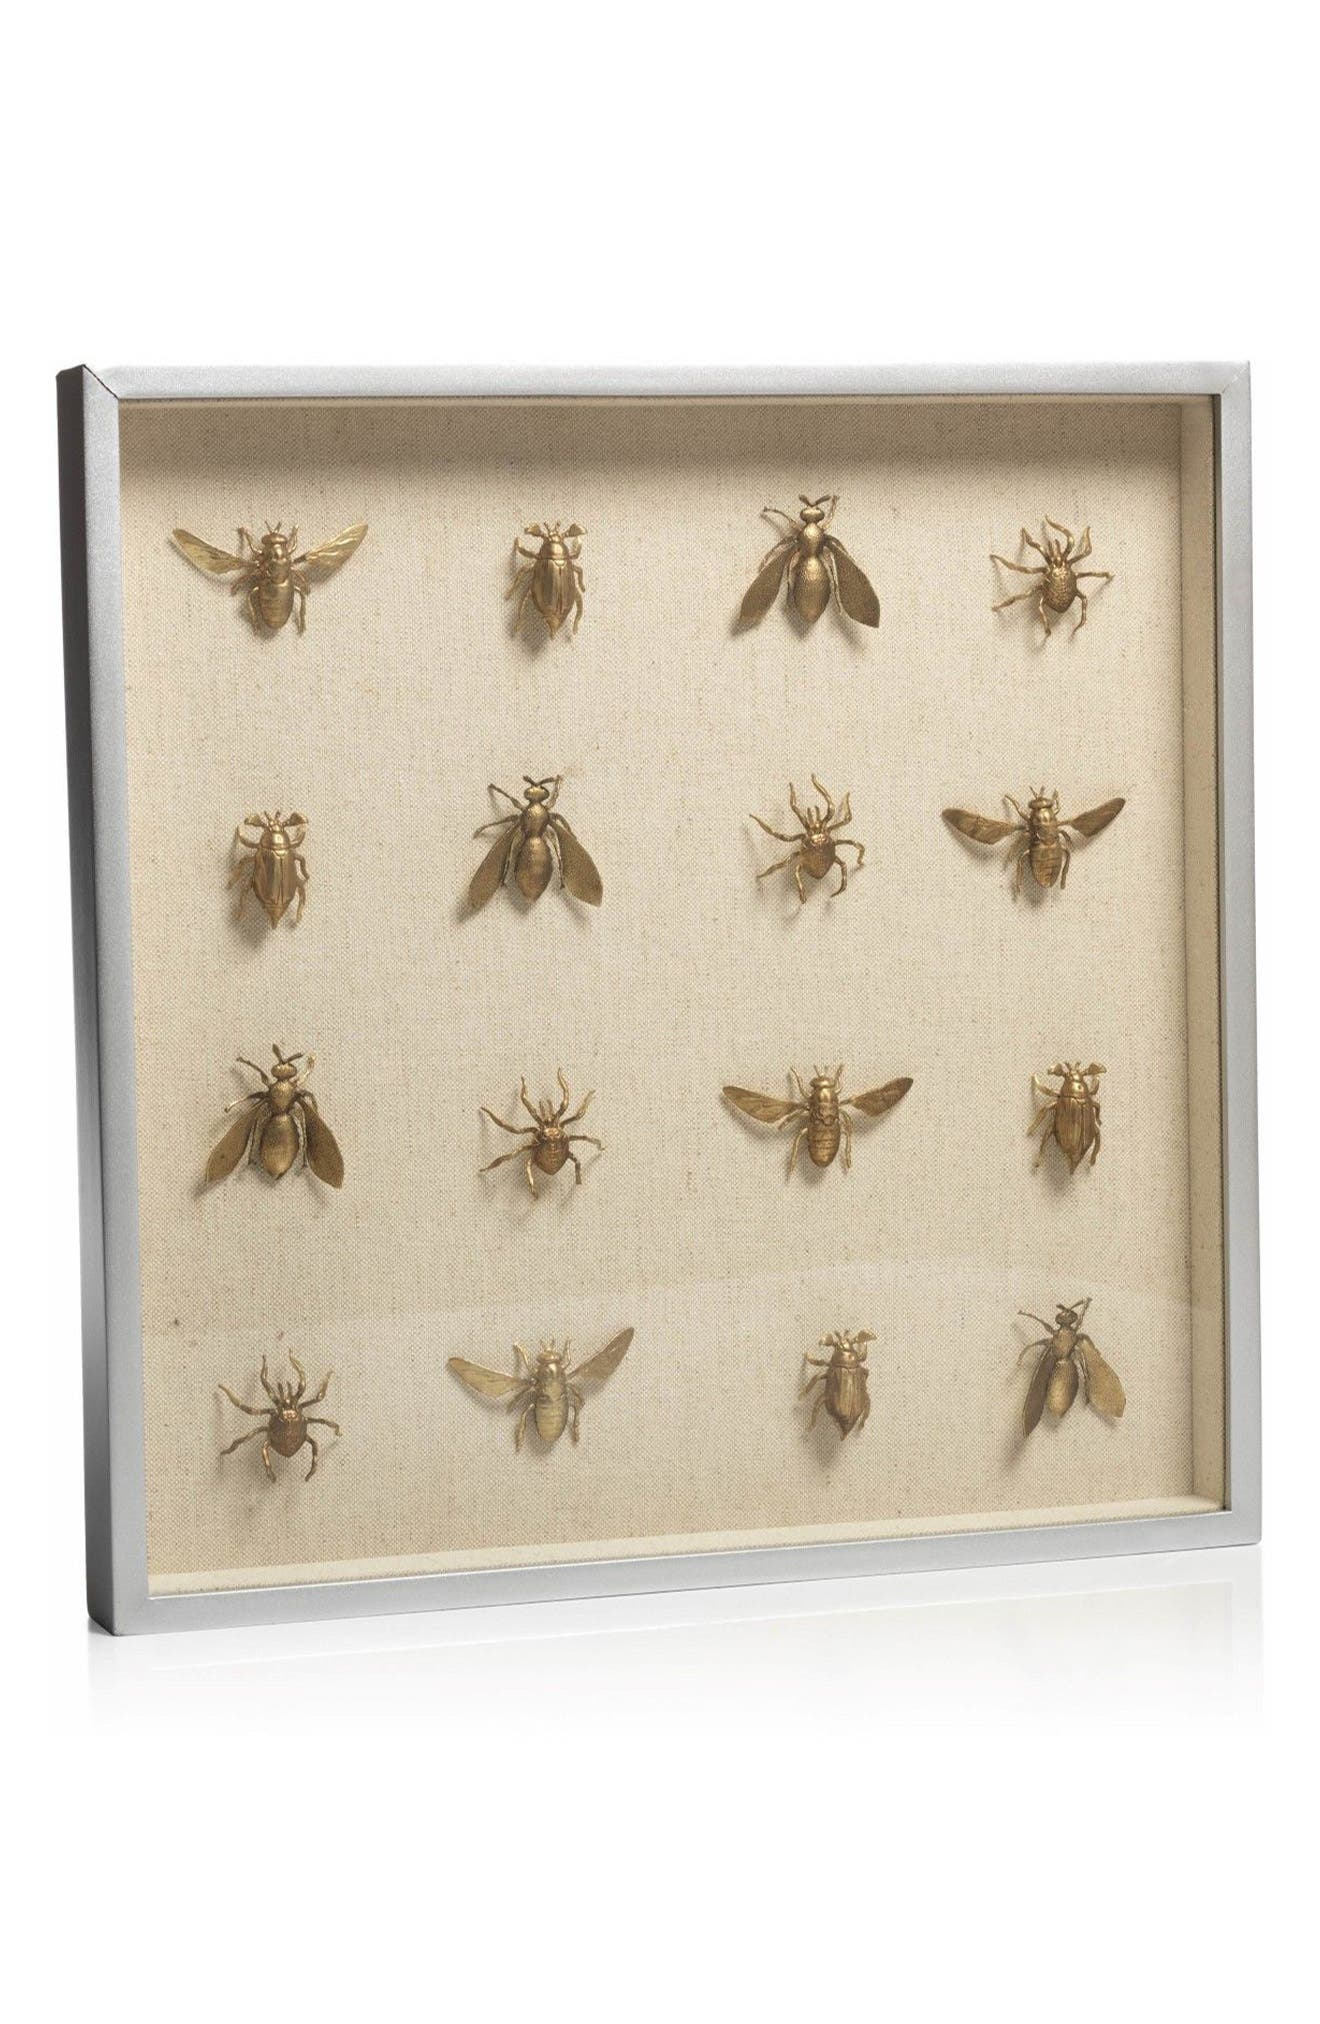 Zodax Insect Shadow Box Art